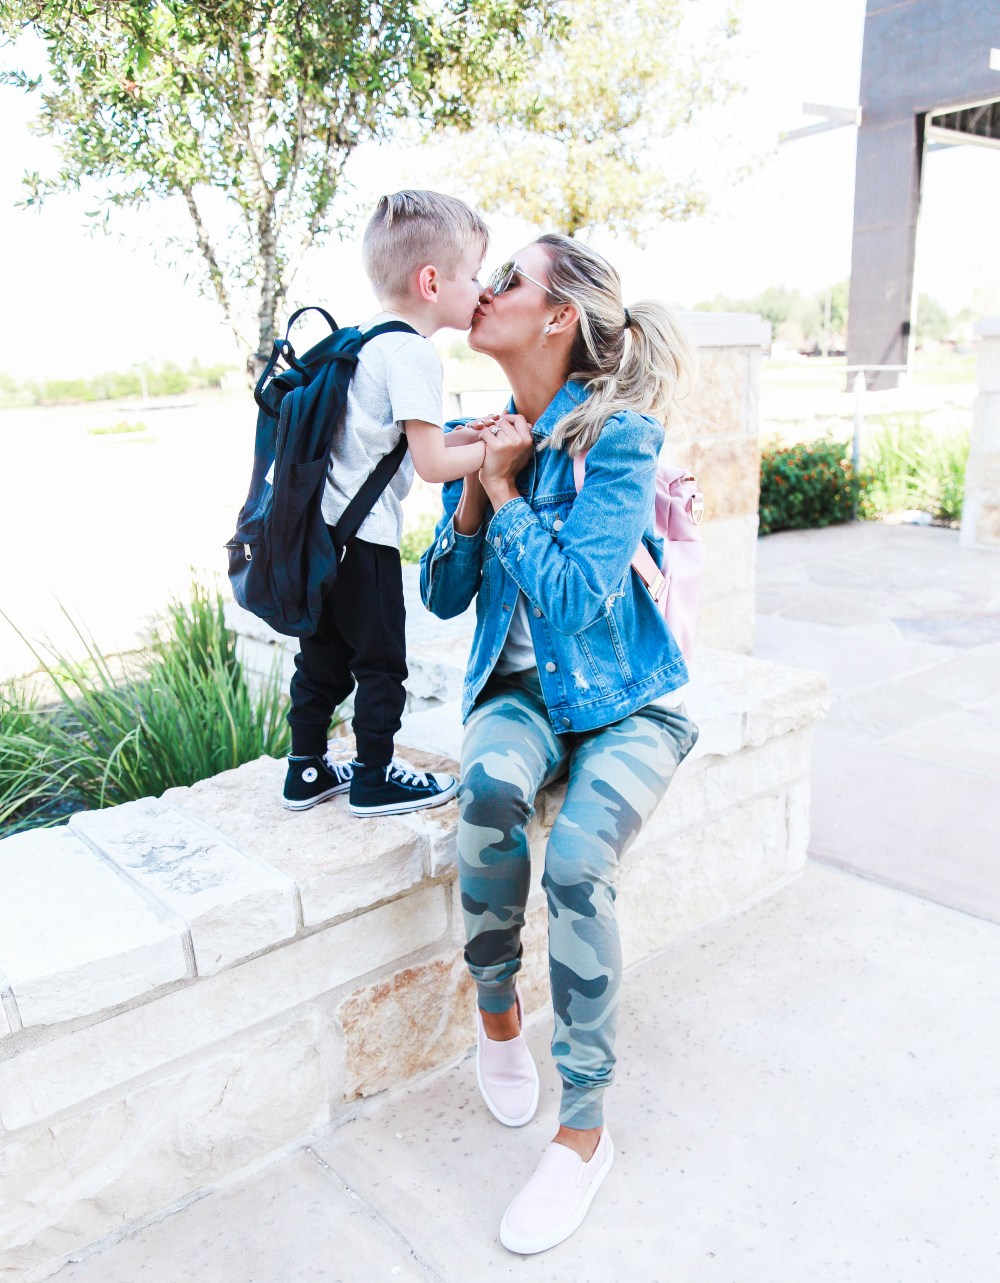 A simple but stylish mom outfit, perfect for running errands! Camo pants and graphic tee with jean jacket! Boy's jogger pants are the it thing in kid's fashion!